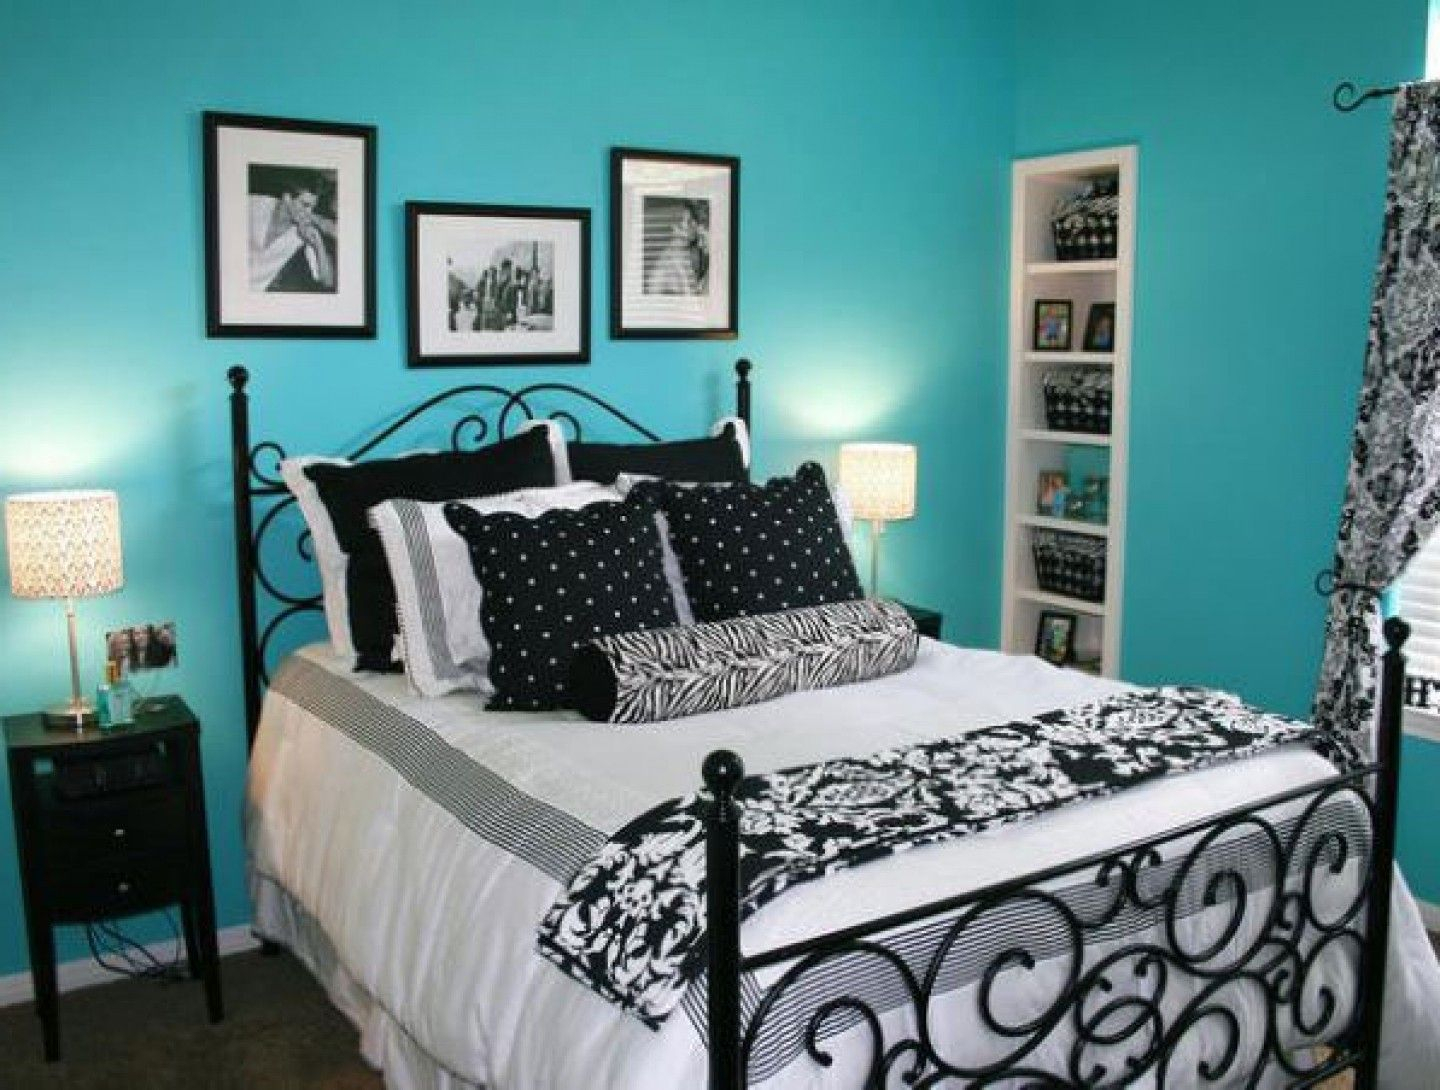 30 turquoise room ideas for your home - bolondon | turquoise room